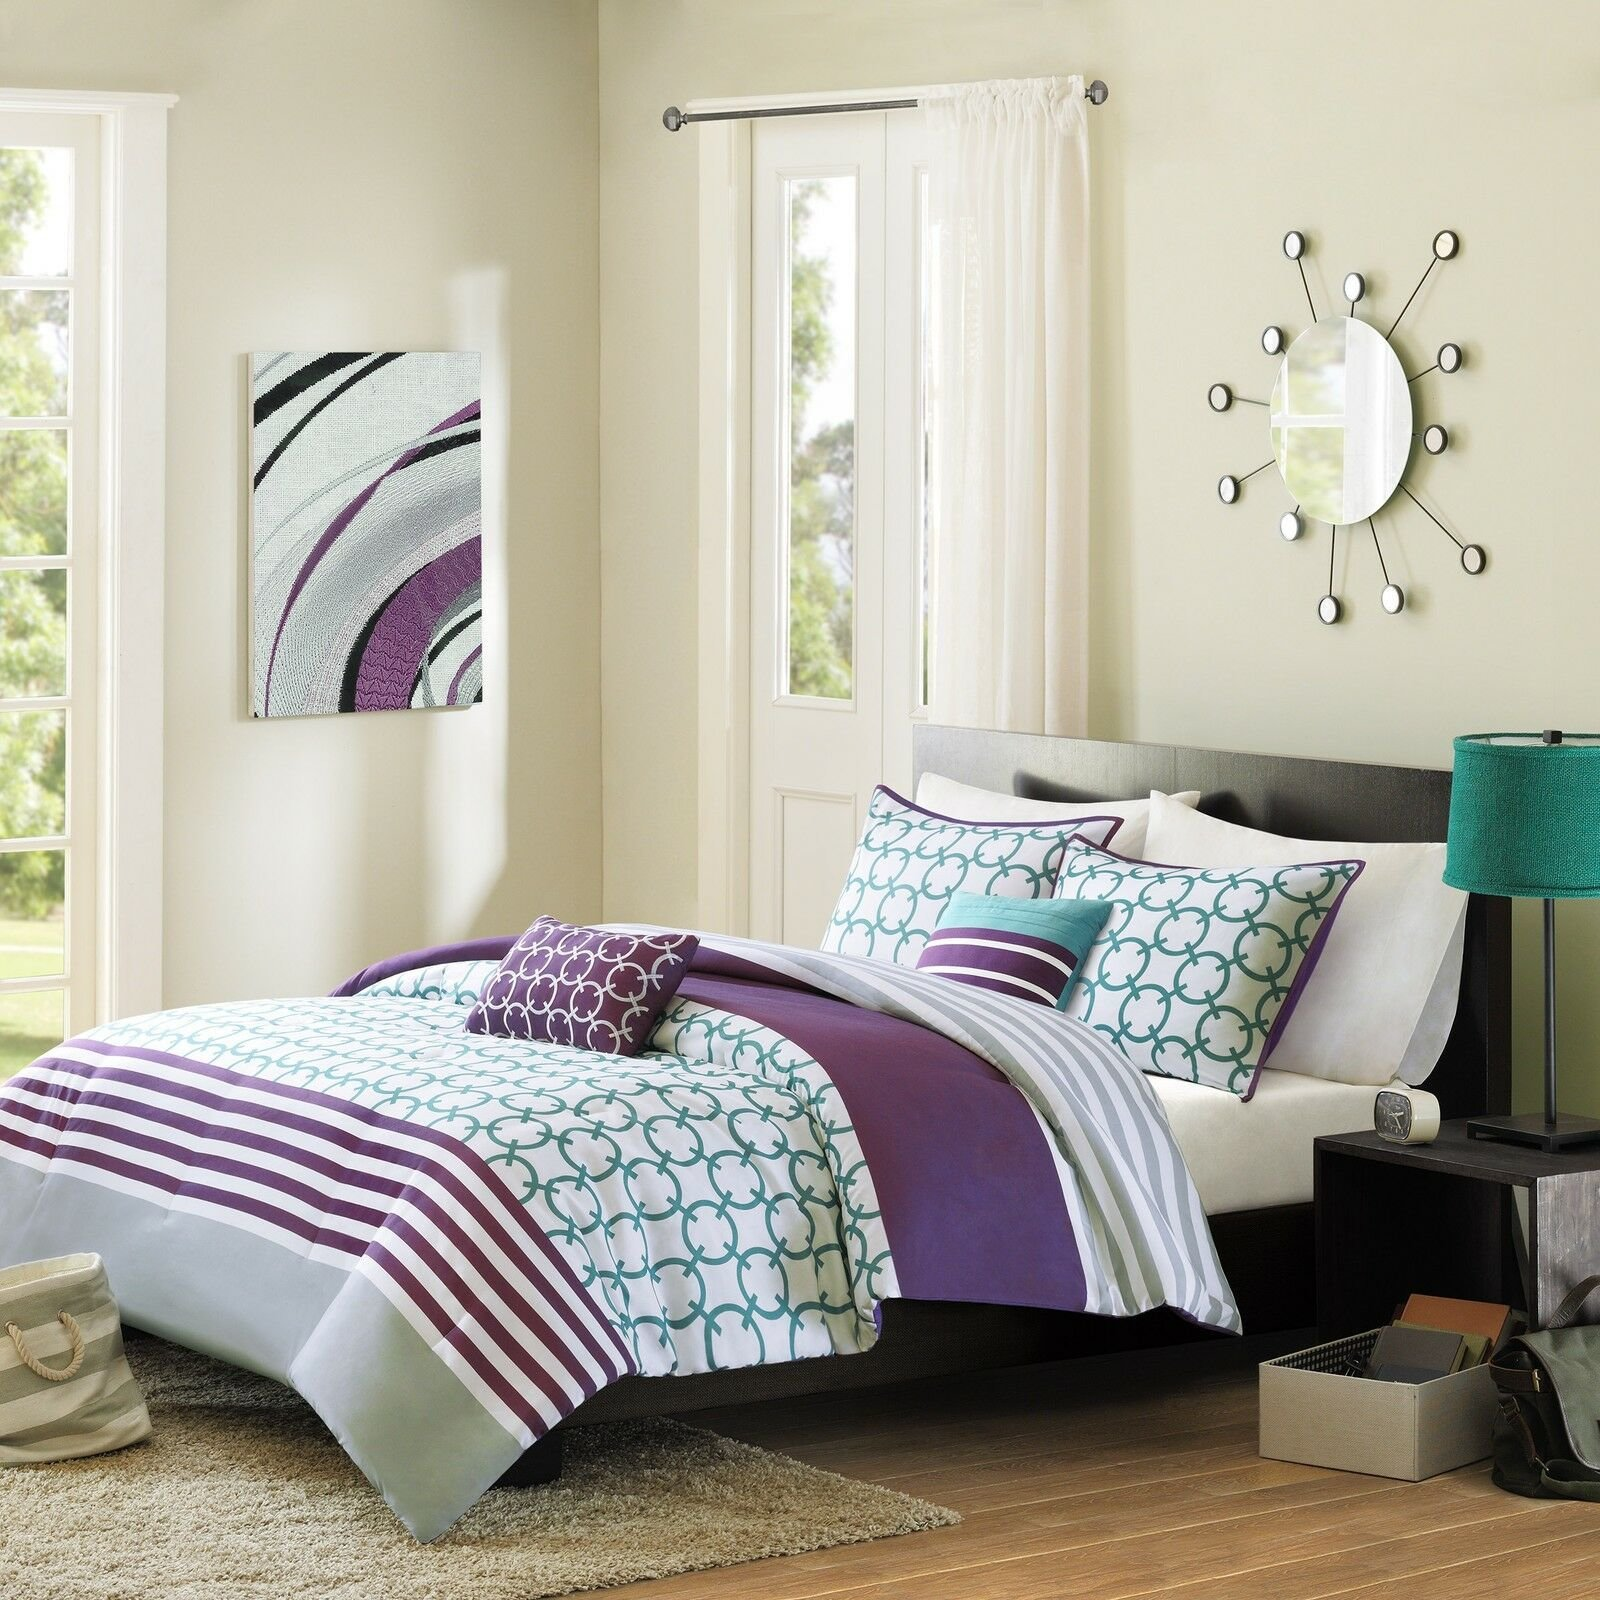 Best Comforter Set For T**N Girls Full Queen 5 Piece Kids With Pictures